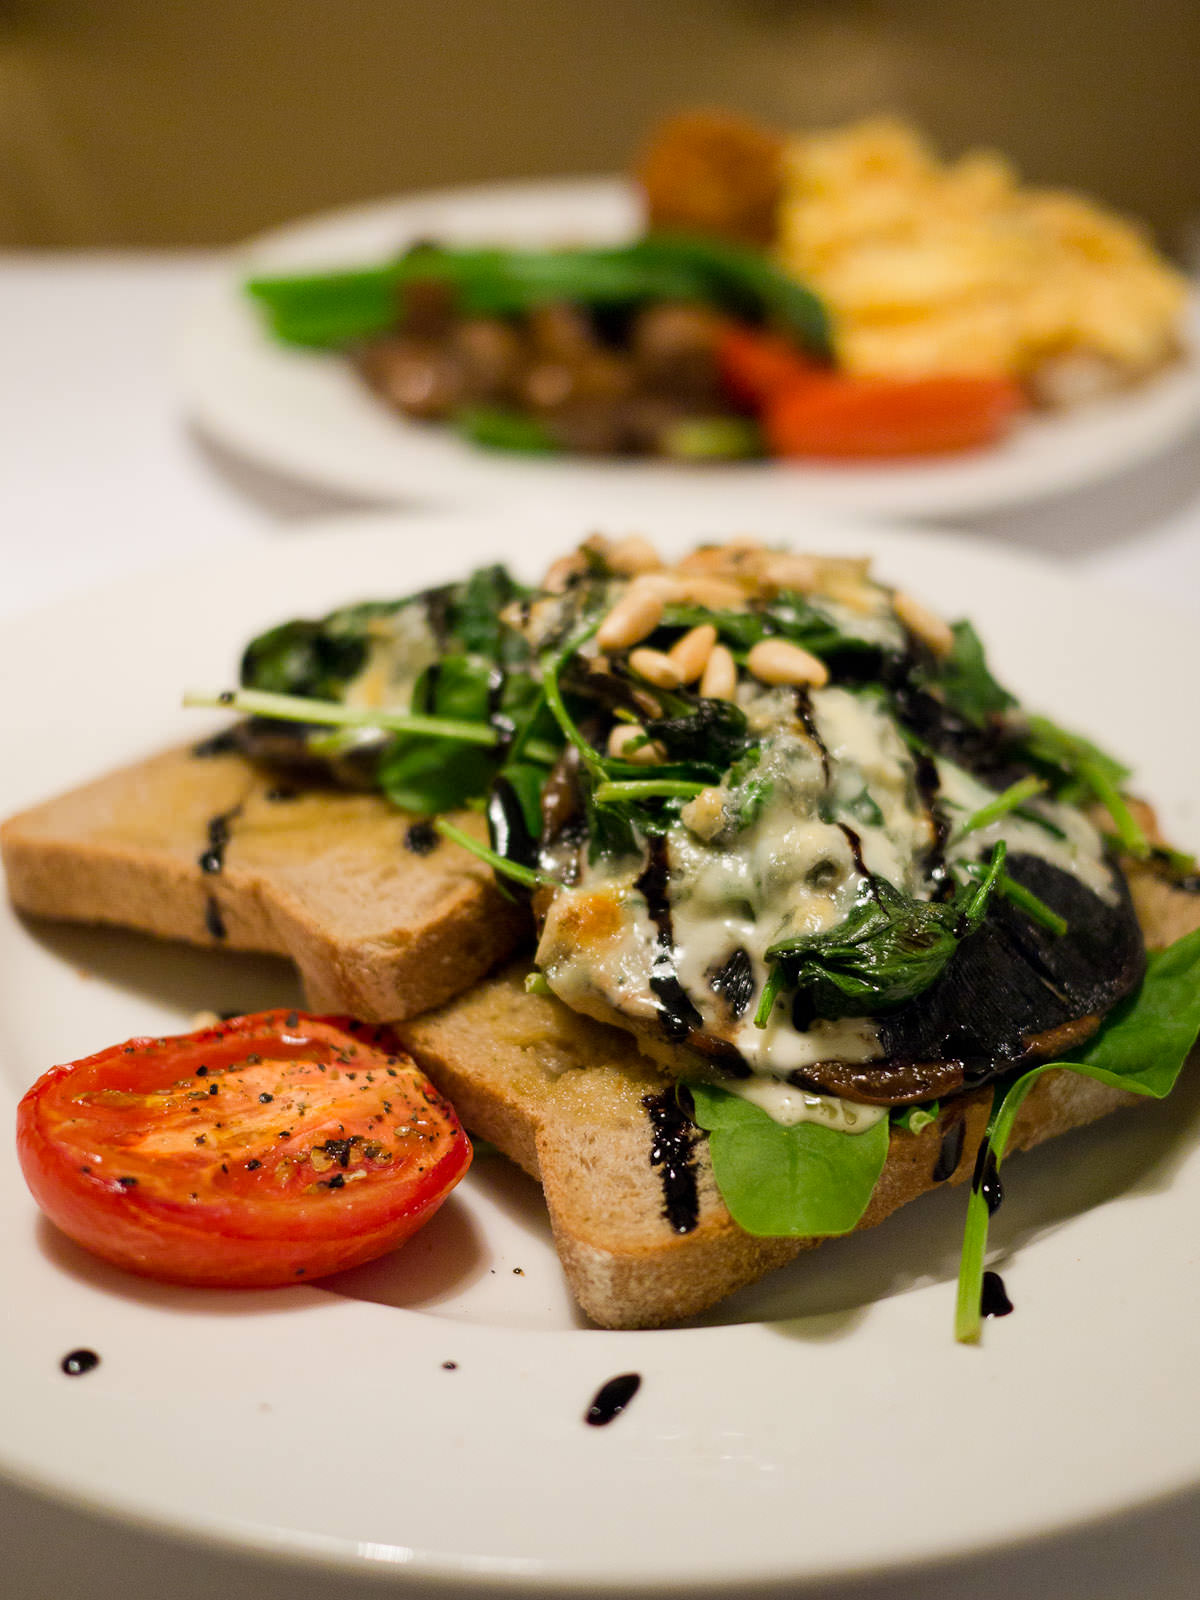 Grilled field mushrooms on rye with blue cheese, spinach, balsamic vinegar and roasted pine nuts (AU$18.10)